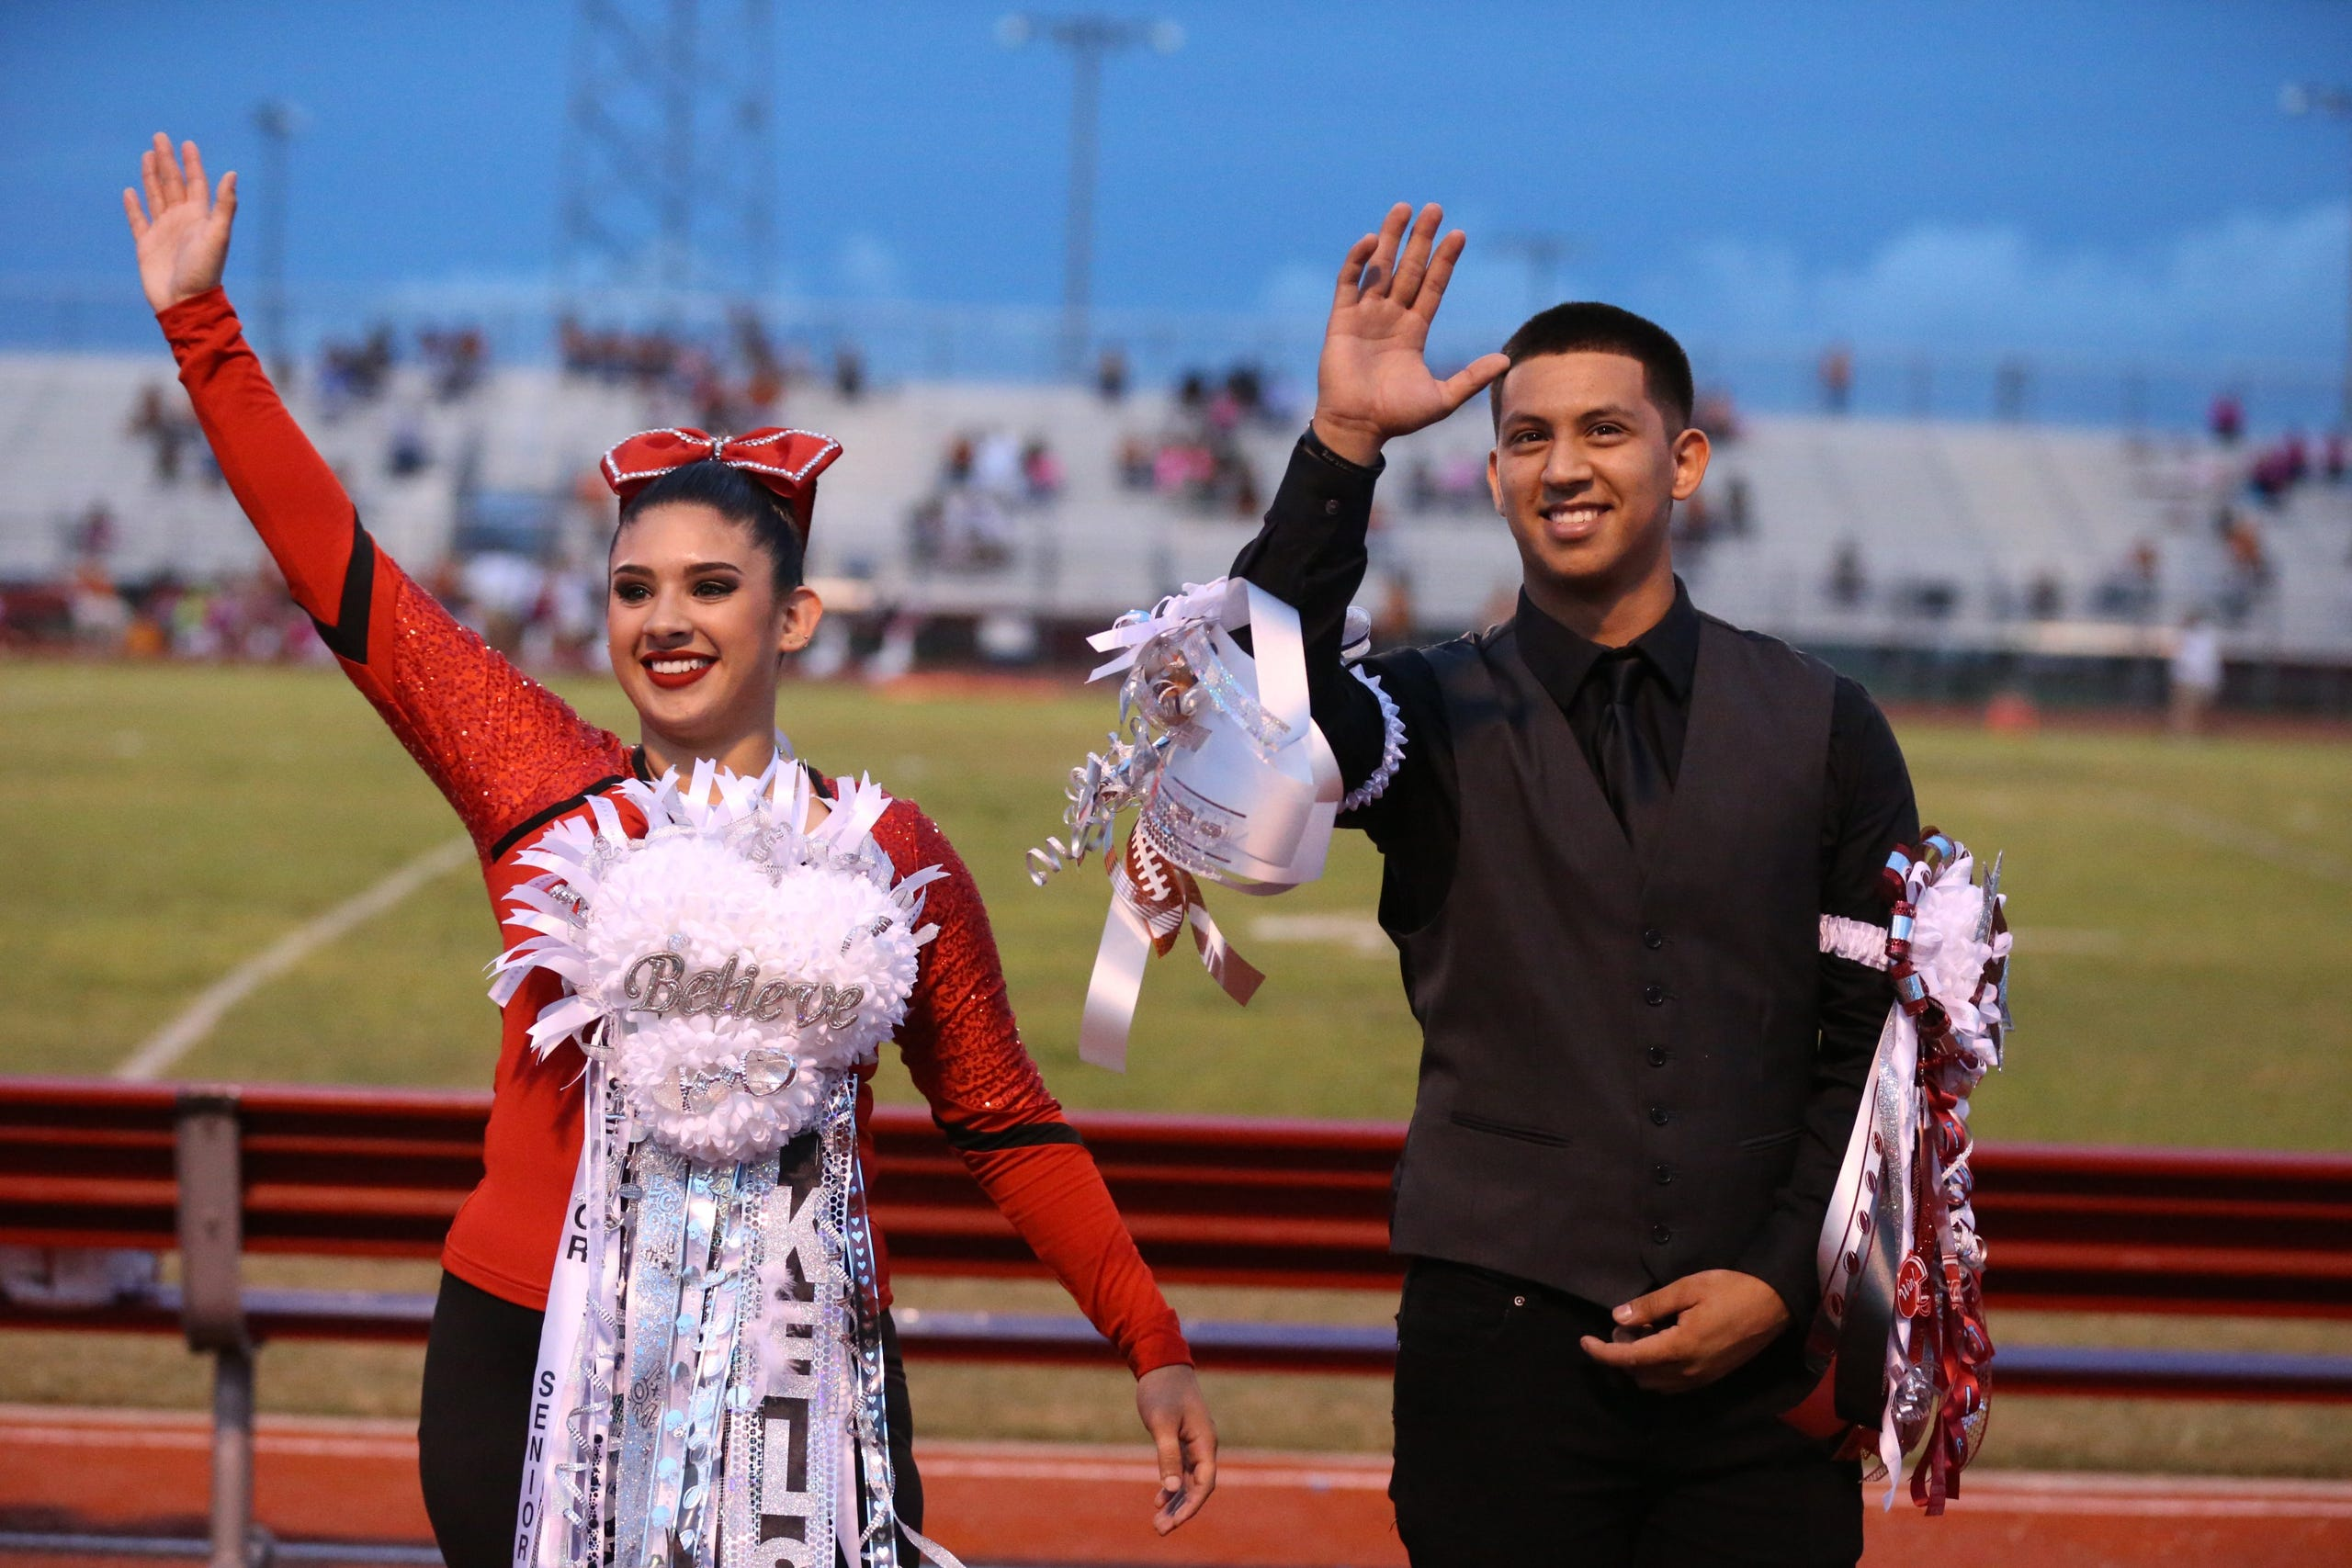 Texas Tradition Homecoming Mums Show School Spirit In Texas